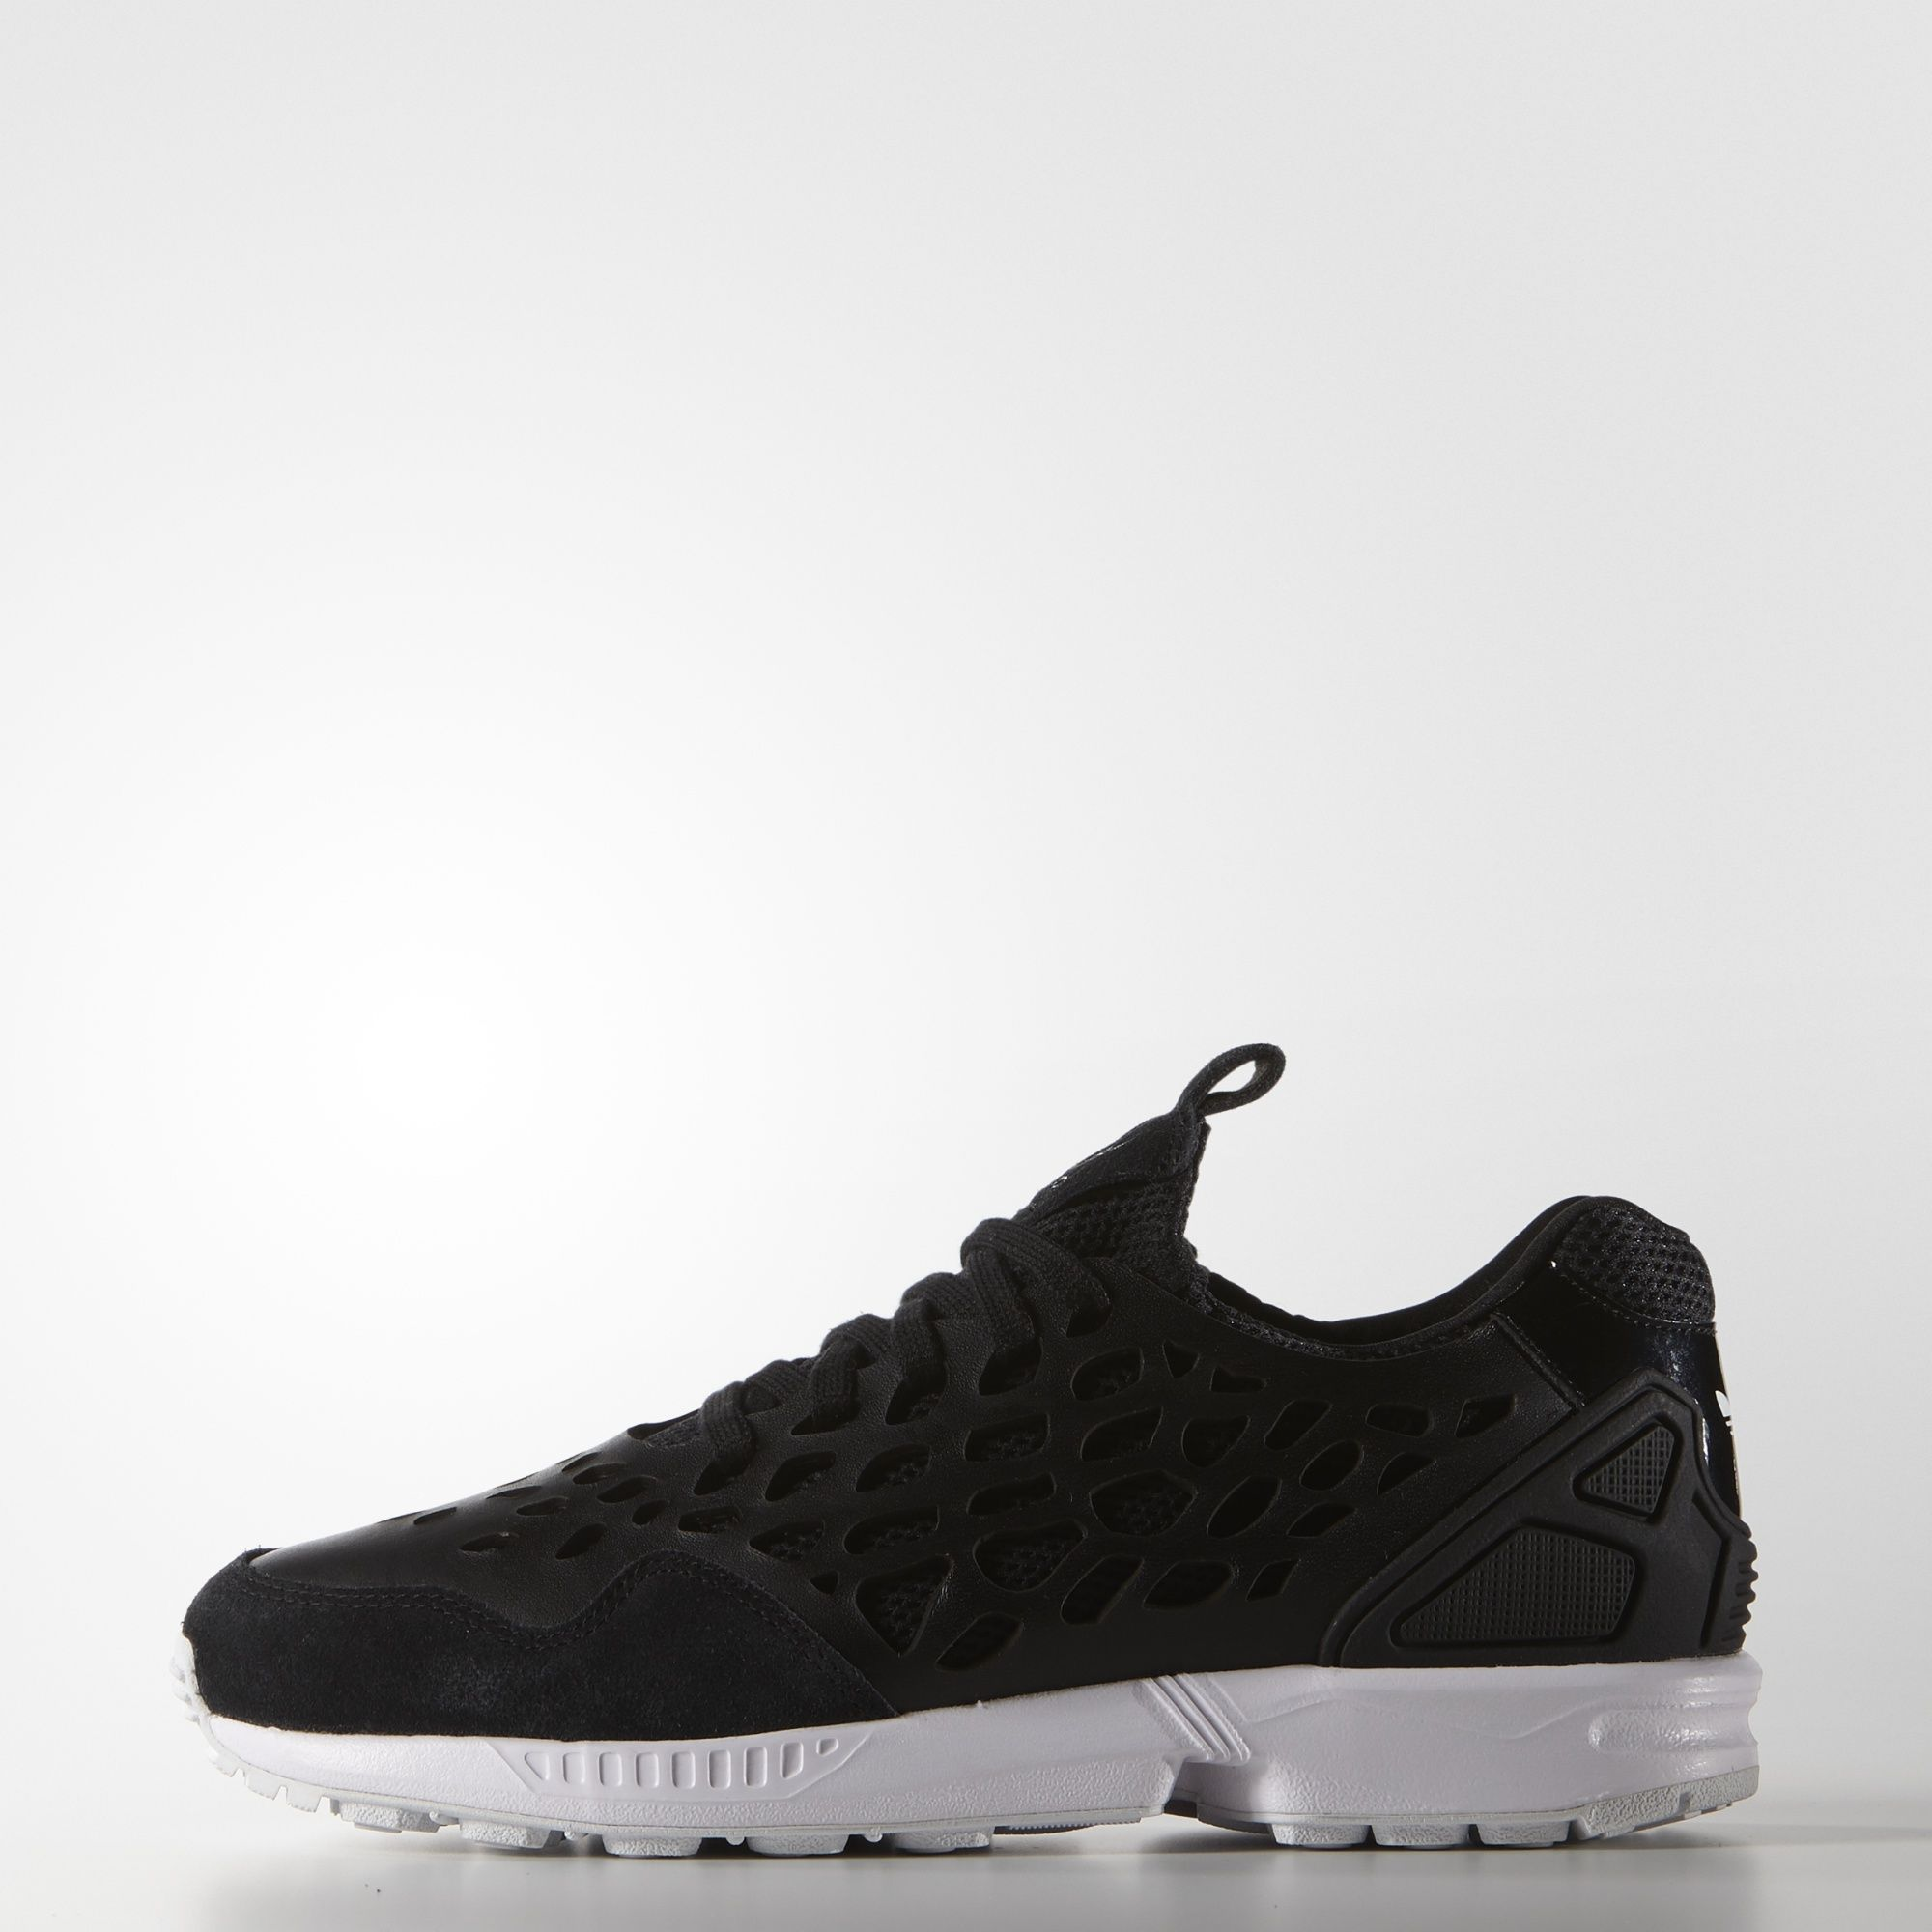 adidas negras mujer zx flux